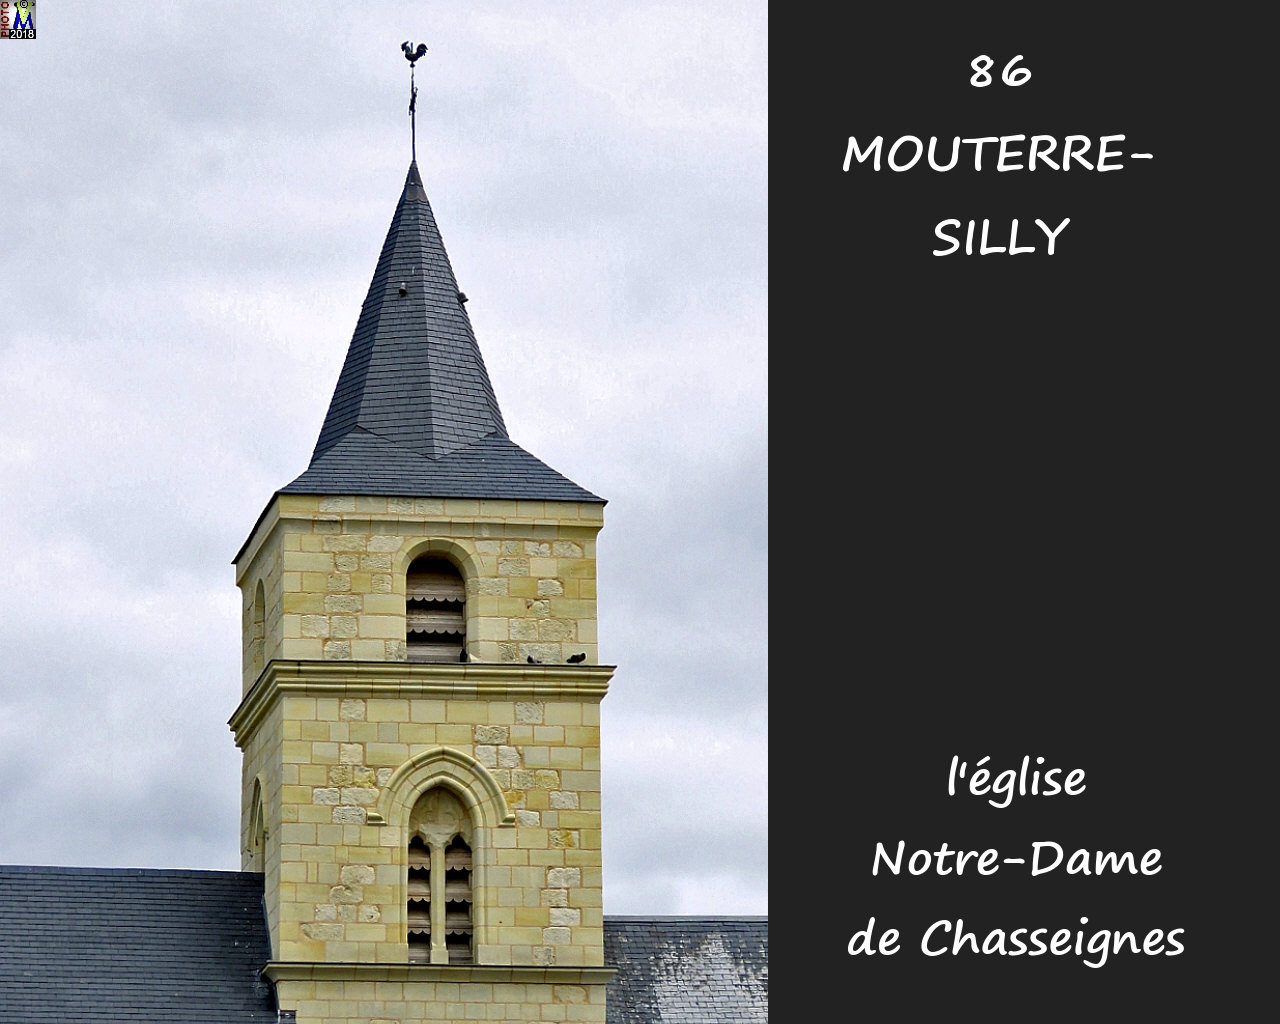 86MOUTERRE-SILLY_egliseND_1008.jpg